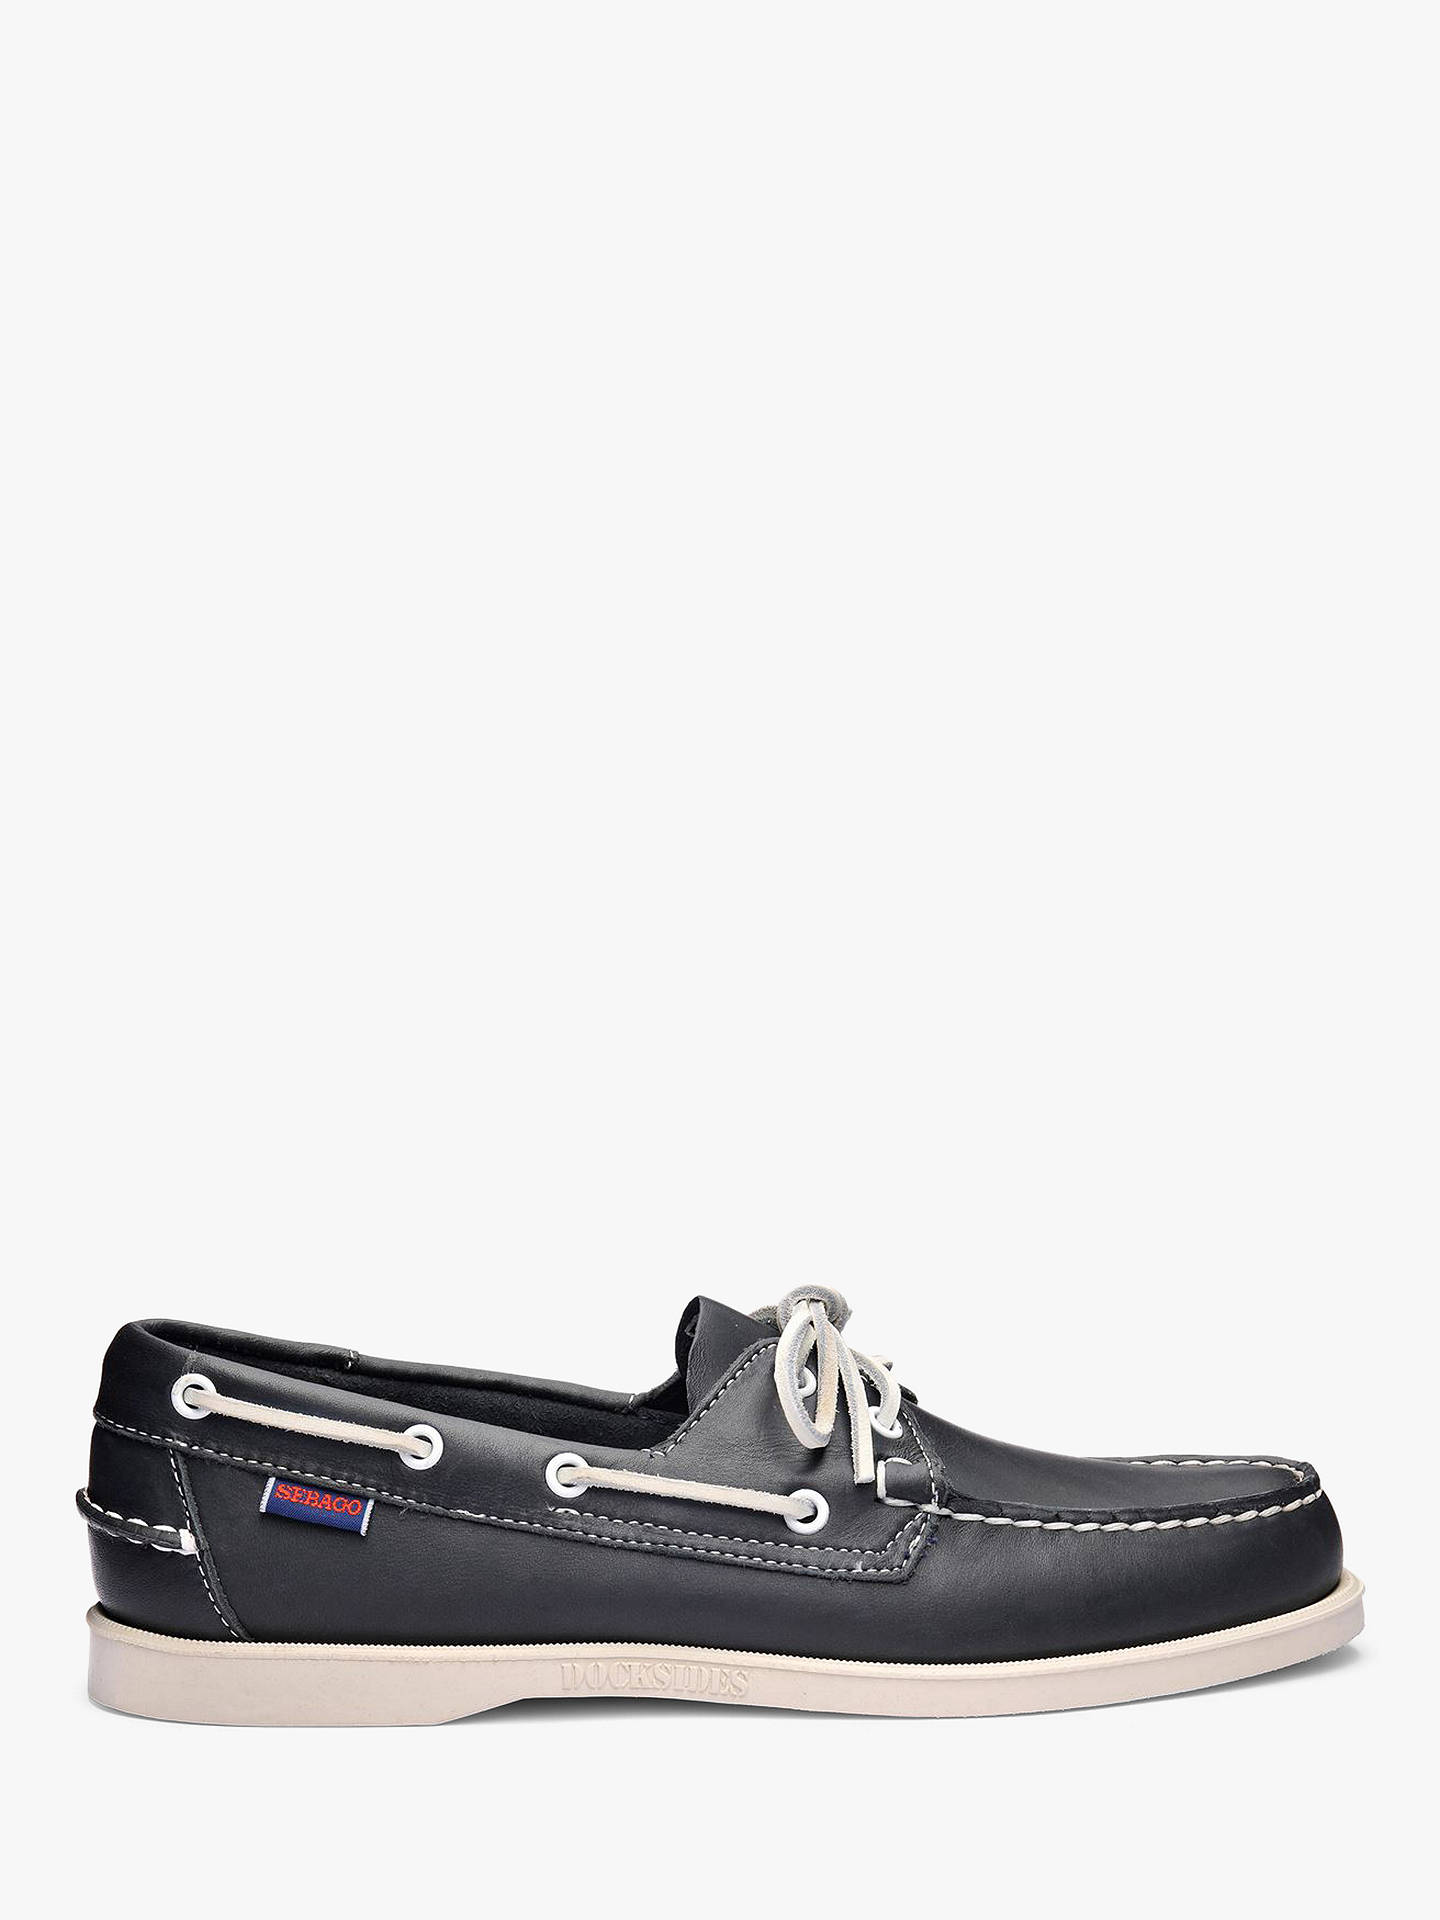 1da4e80964b Buy Sebago Dockside Portland Leather Boat Shoes